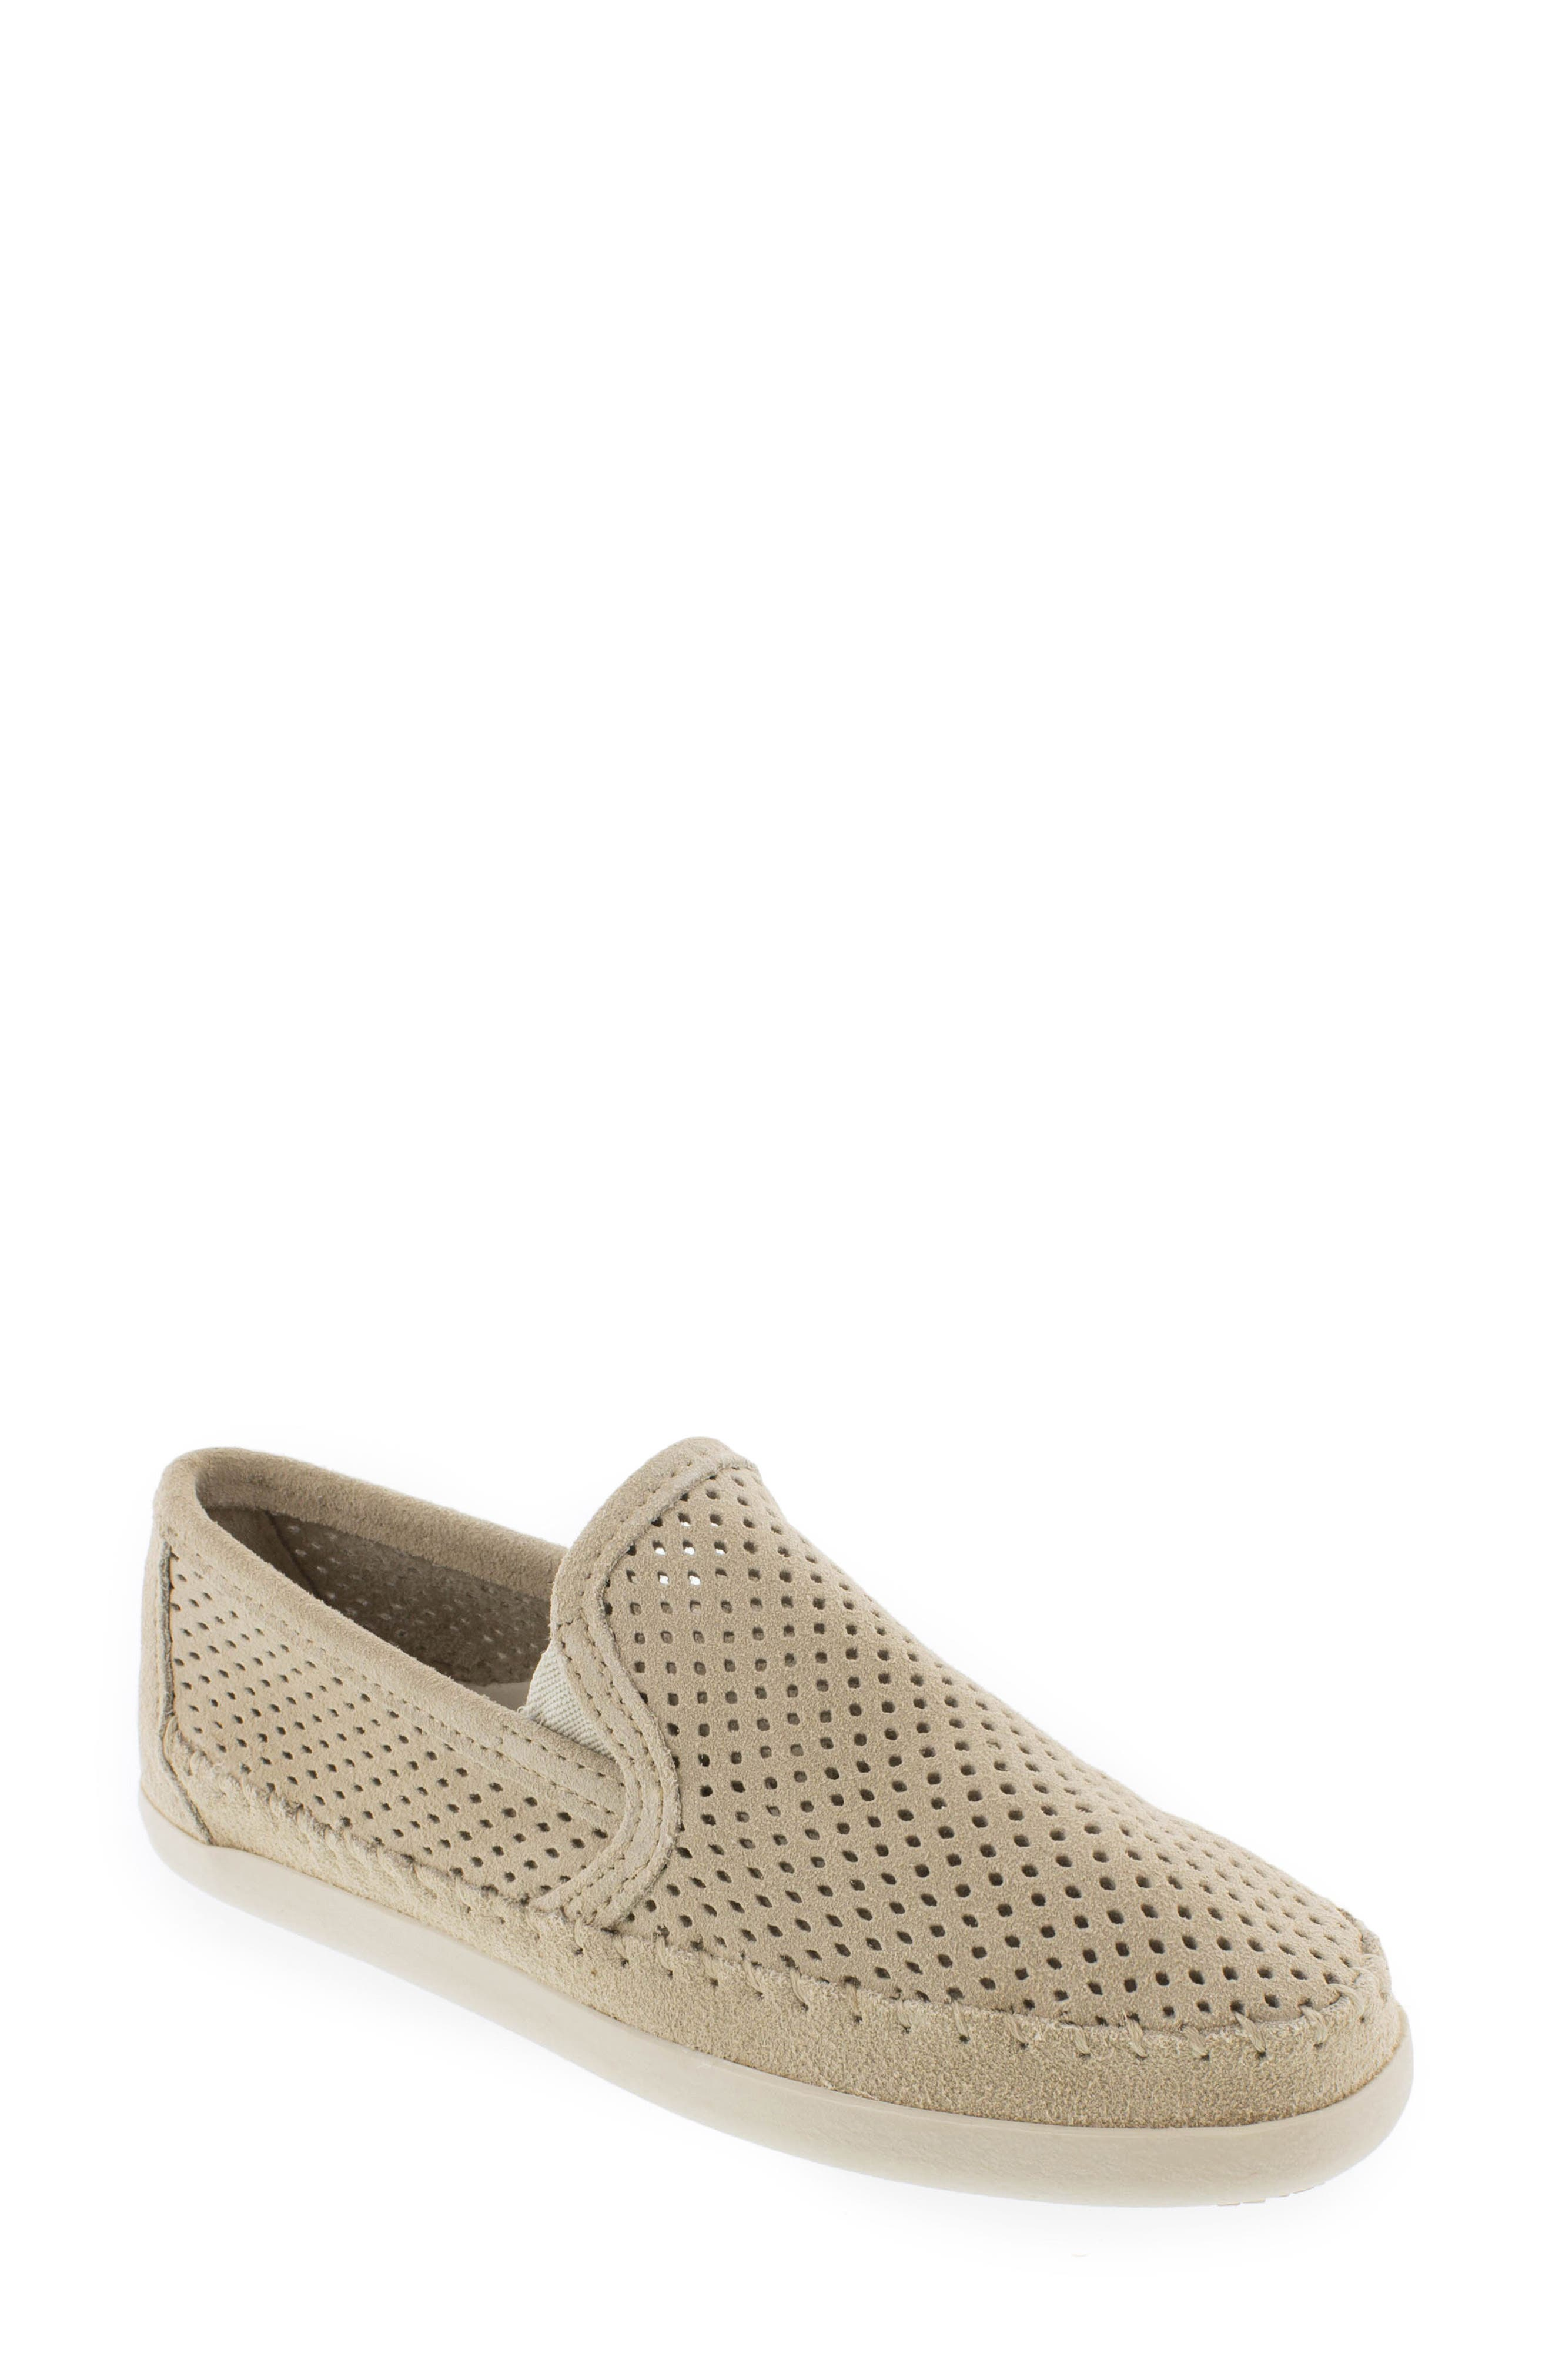 Femmes Minnetonka Pacific Chaussures Loafer